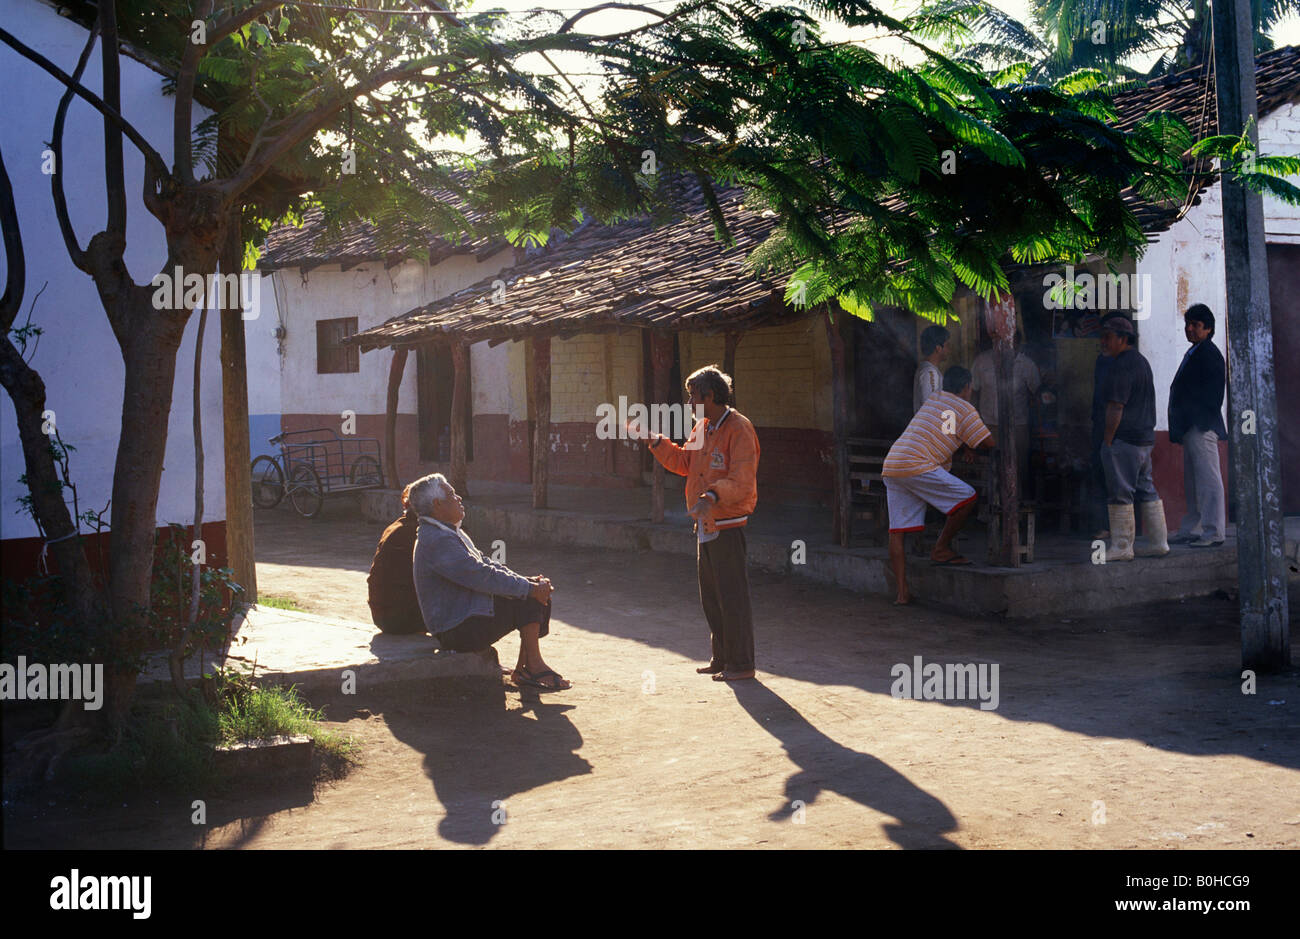 Street scene in Mexcaltitan, Nayarit, Mexico - Stock Image